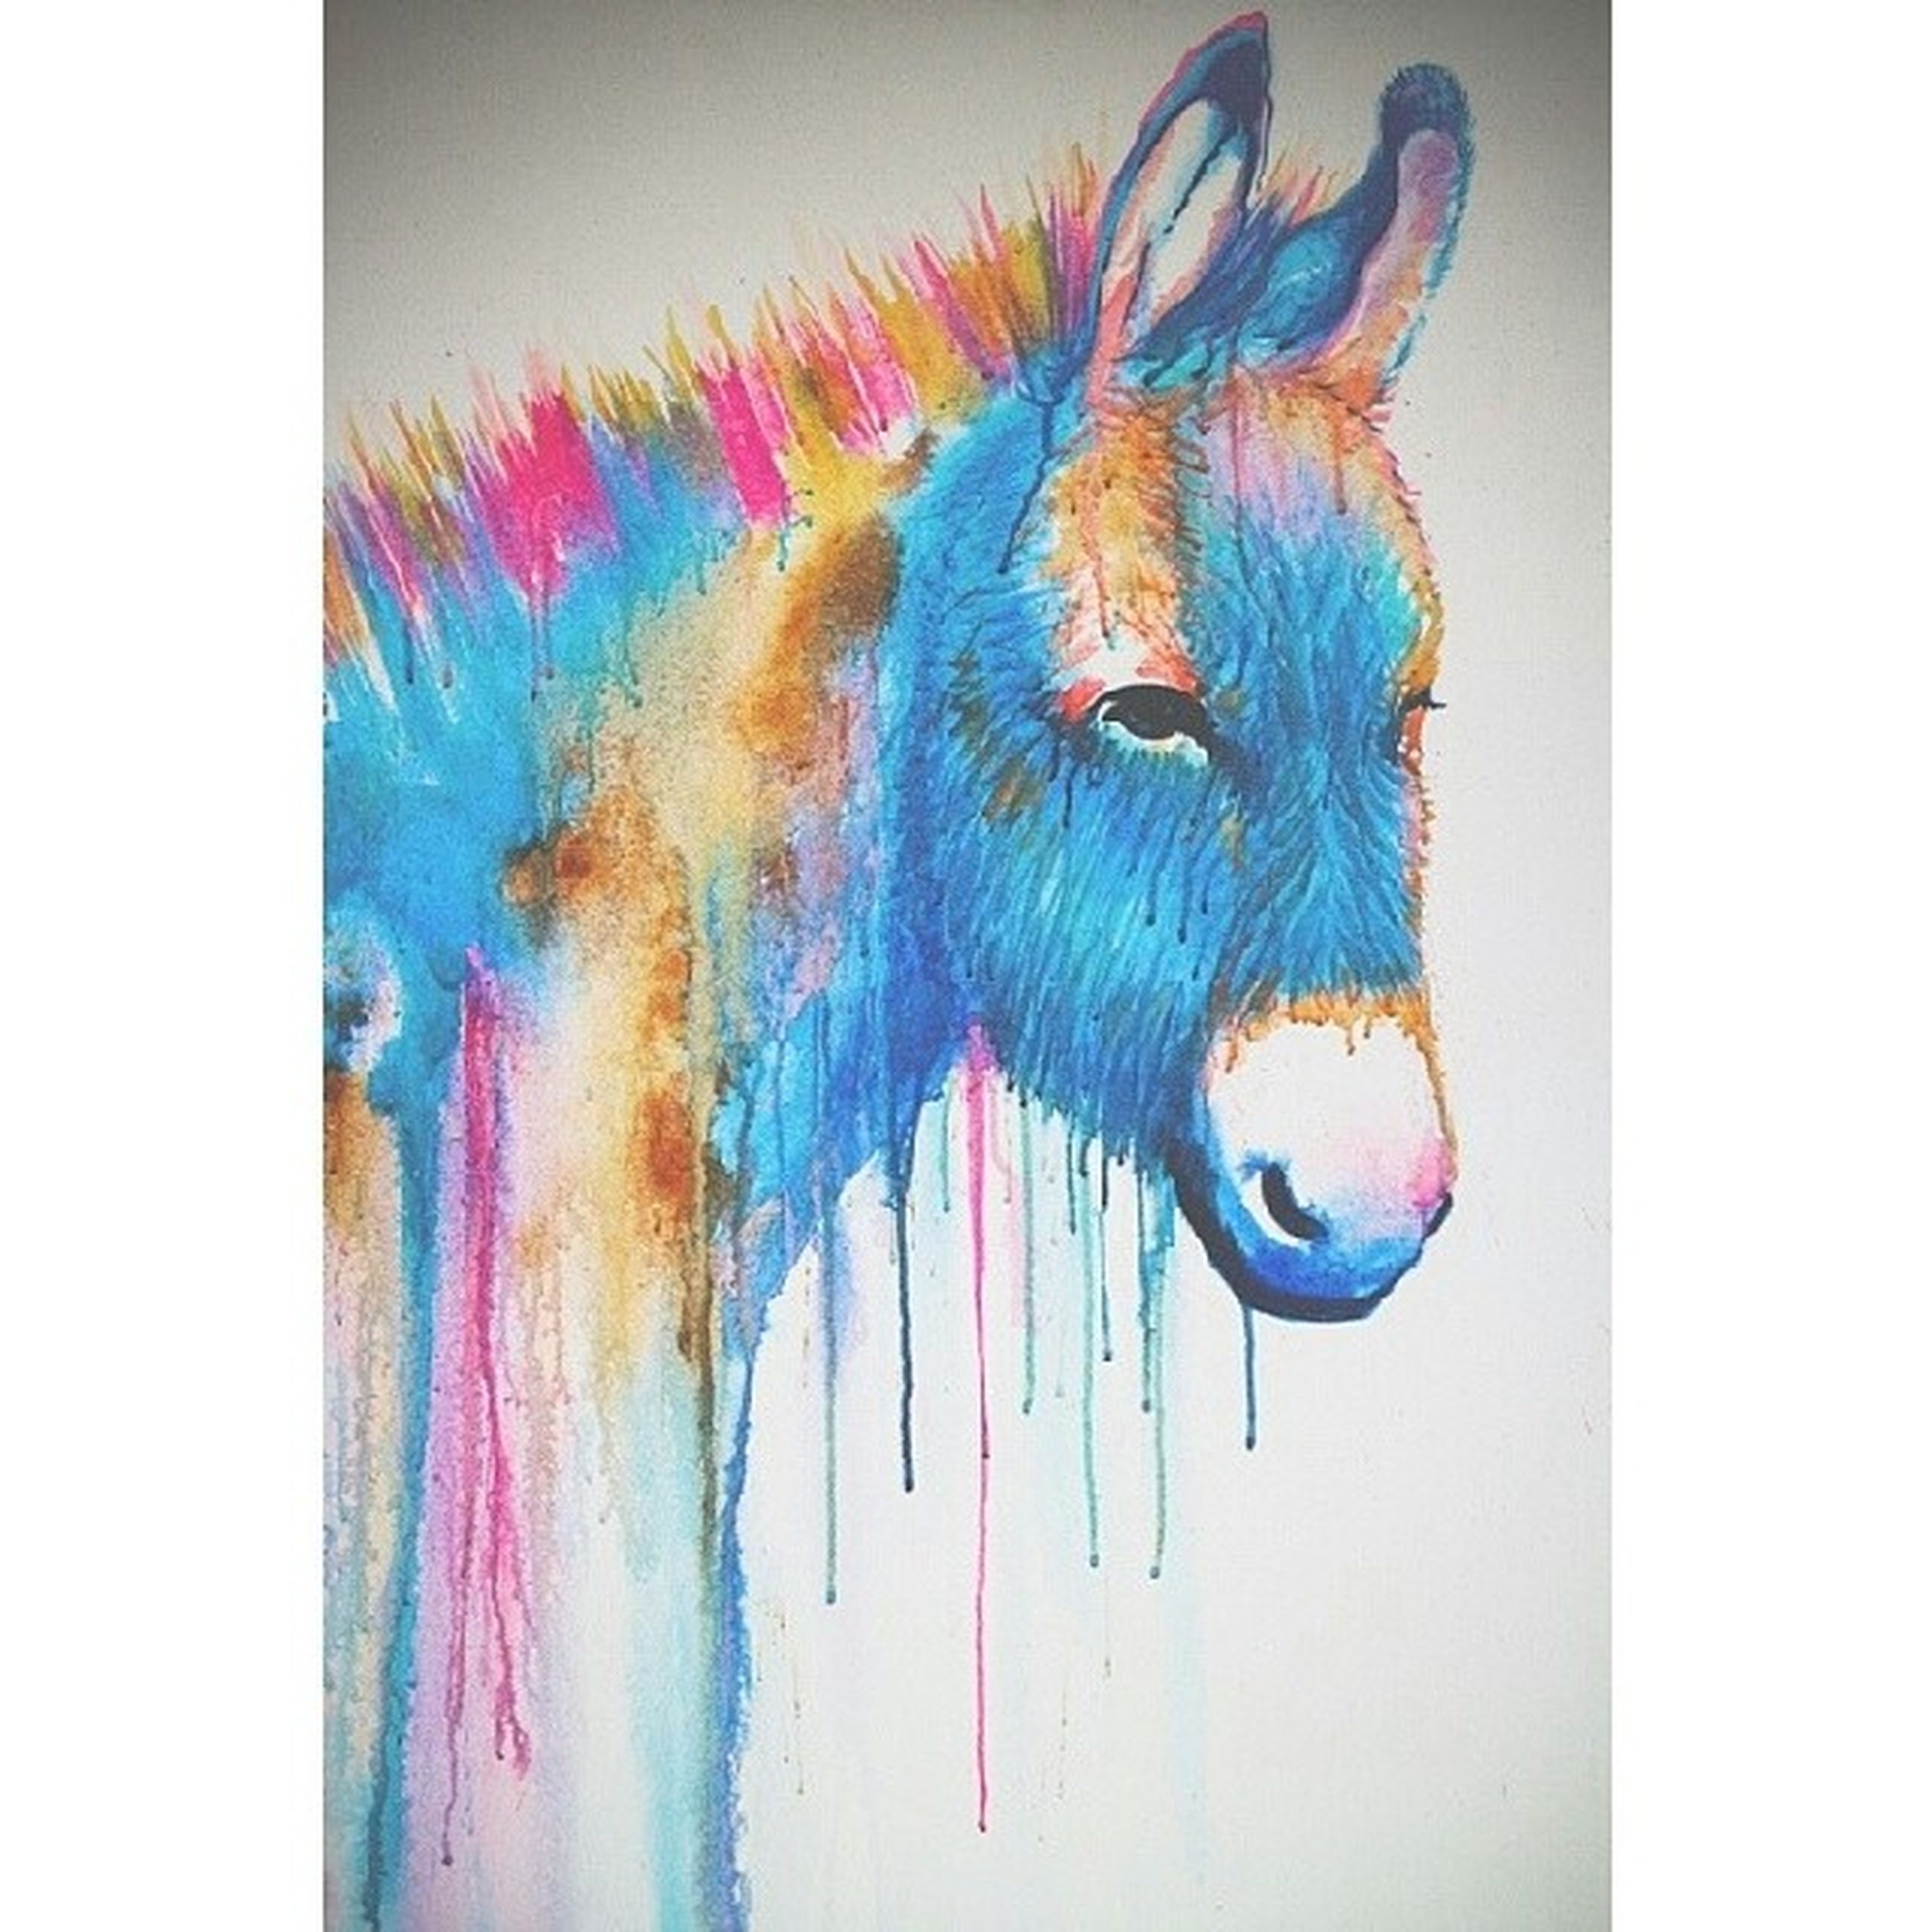 art and craft, art, creativity, multi colored, animal representation, close-up, auto post production filter, human representation, animal themes, no people, colorful, horse, graffiti, sculpture, craft, transfer print, wall - building feature, blue, outdoors, decoration